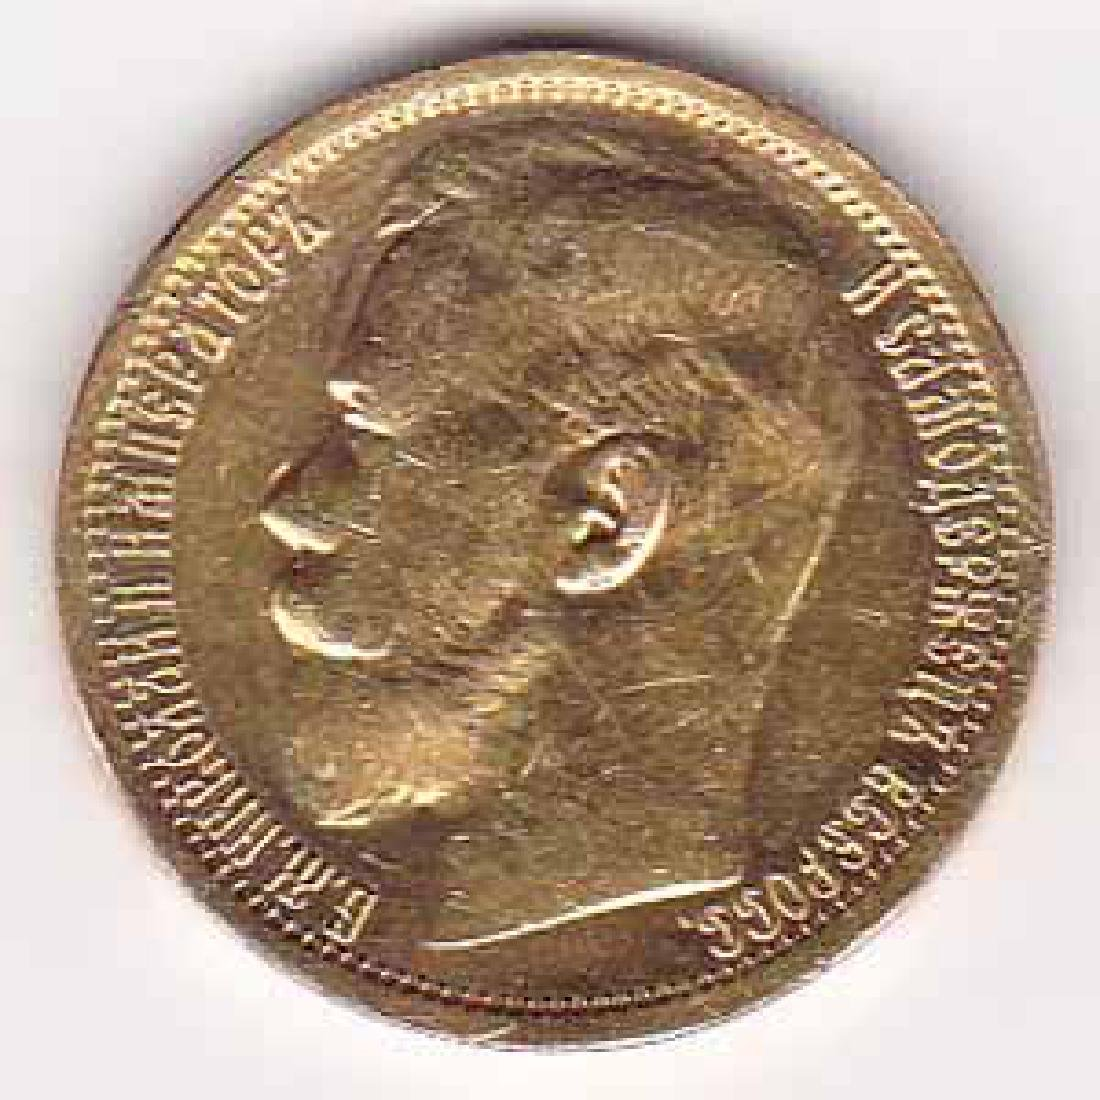 Russia 15 roubles gold 1897